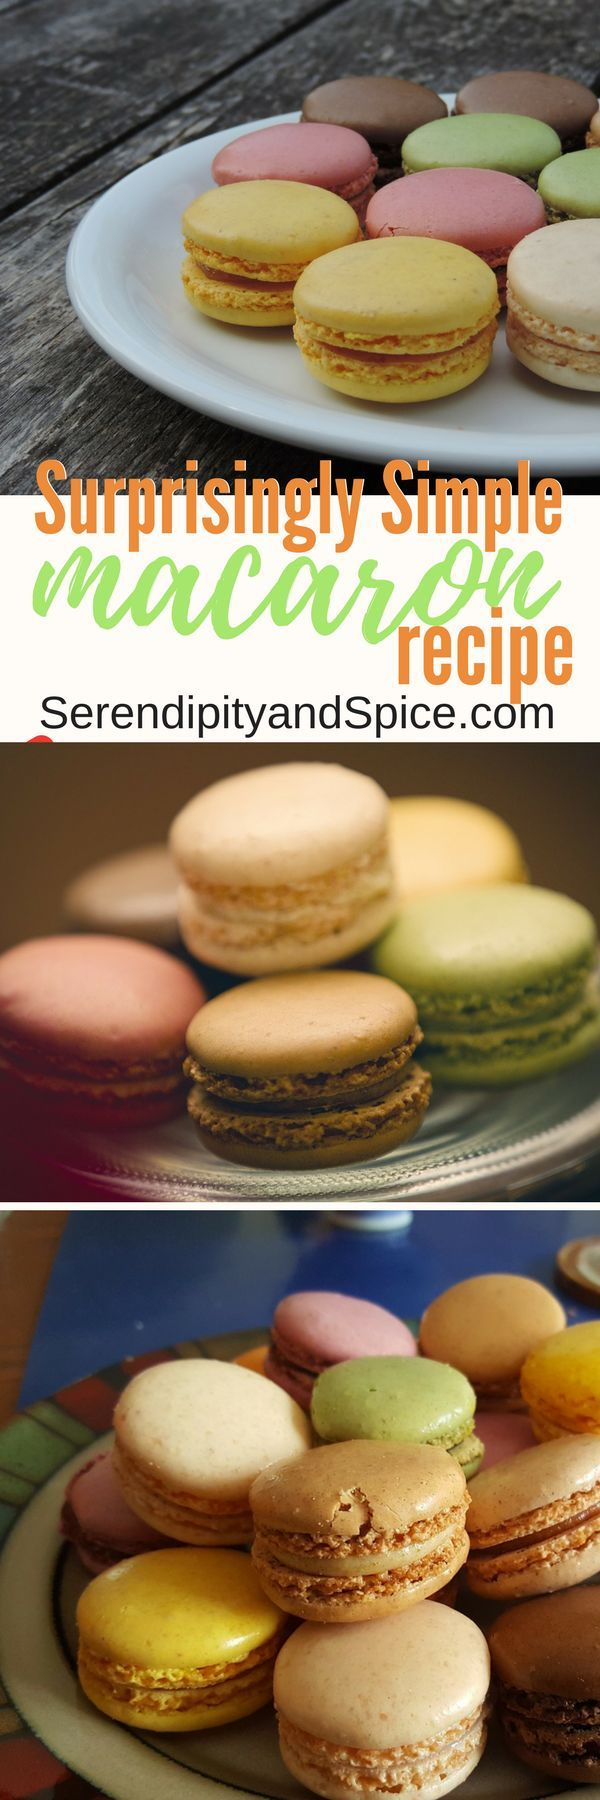 Easy to make macarons that taste like they came straight from a french bakery or pastry shop! #Cookies #Pastry #EasyRecipe #Dessert #Sweets #Easter #Spring